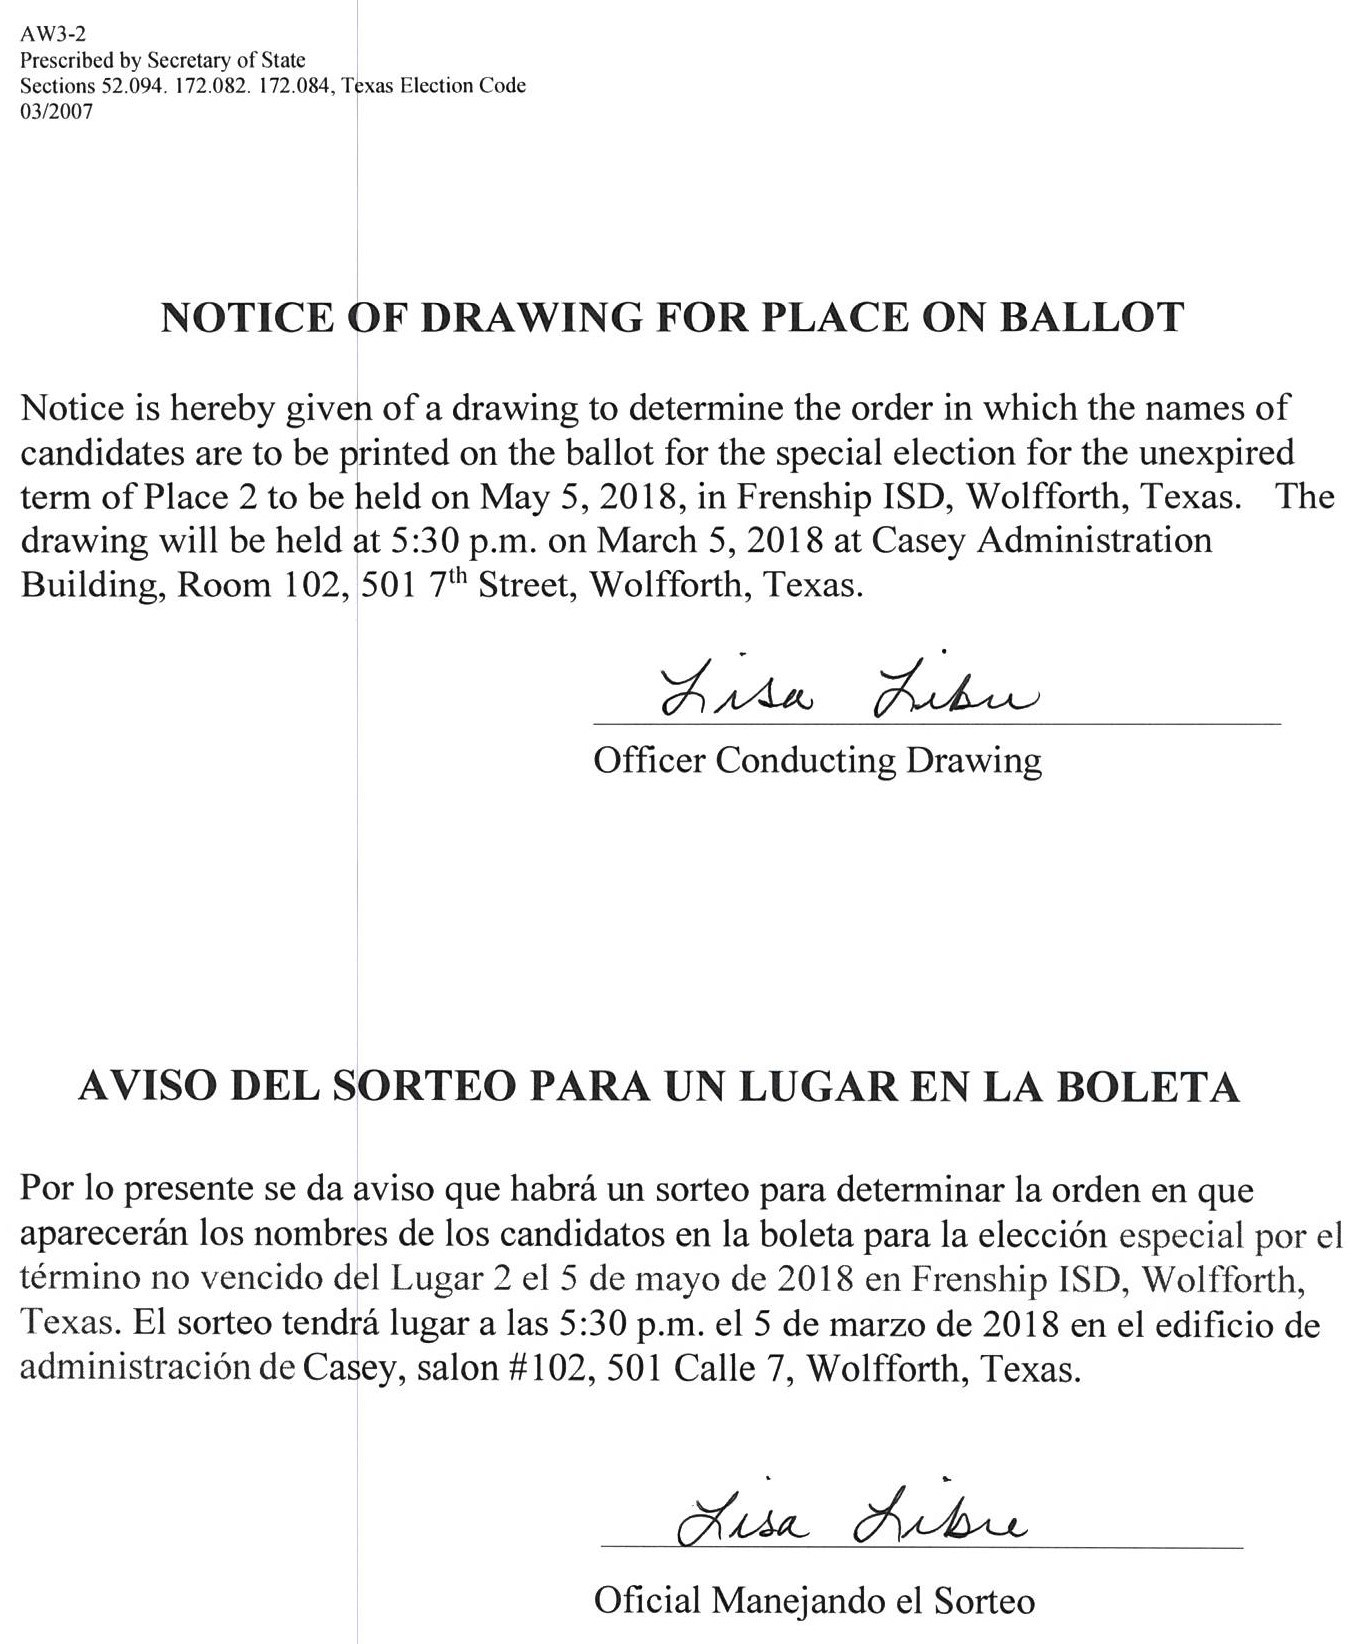 Notice of Drawing for Place on Ballot